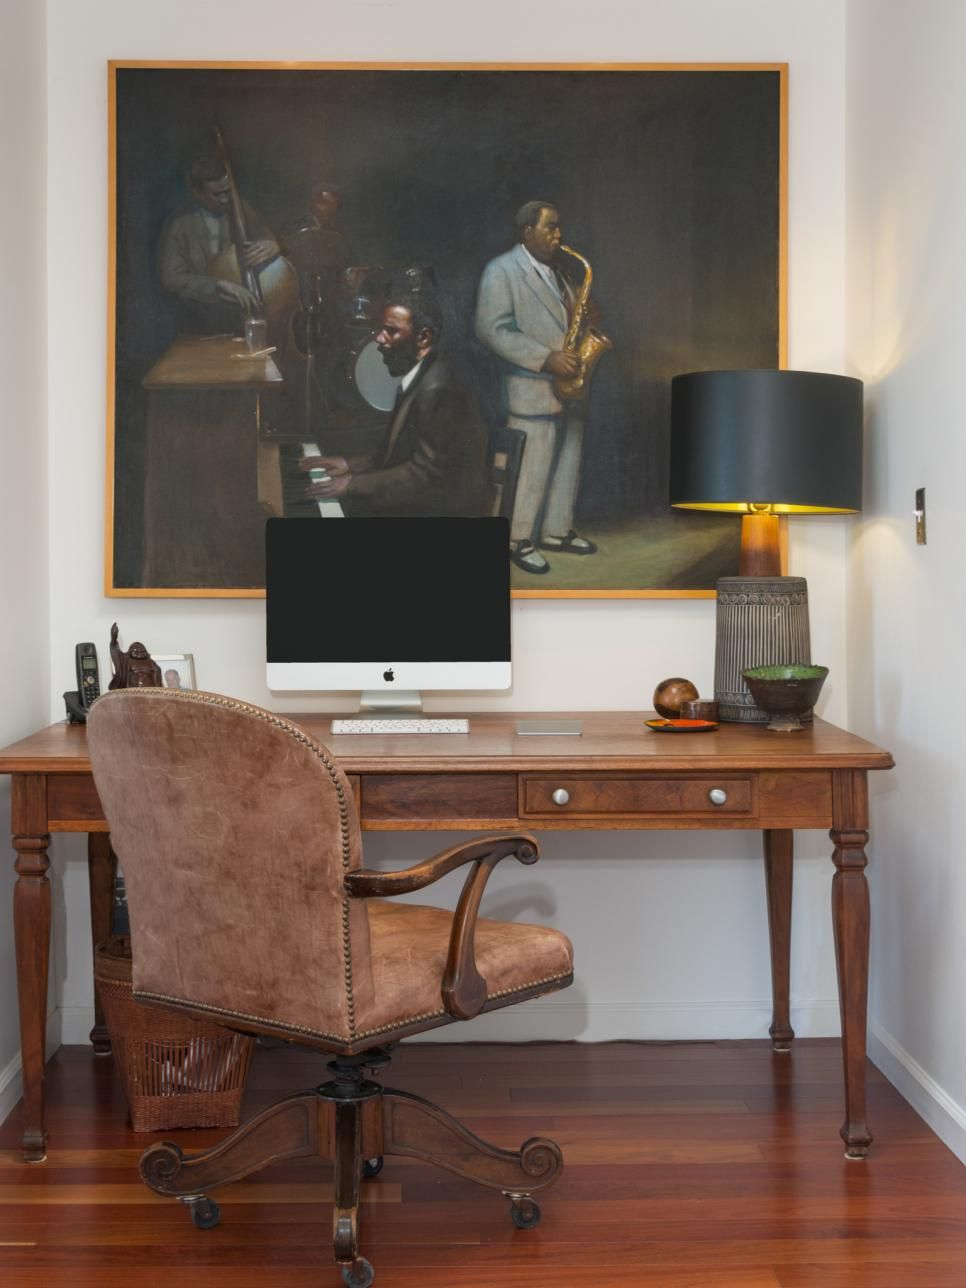 accessories home office tables chairs paintings. A Large Painting Of Jazz Musicians Creates Mellow Mood In This Small Home Office. Accessories Office Tables Chairs Paintings O